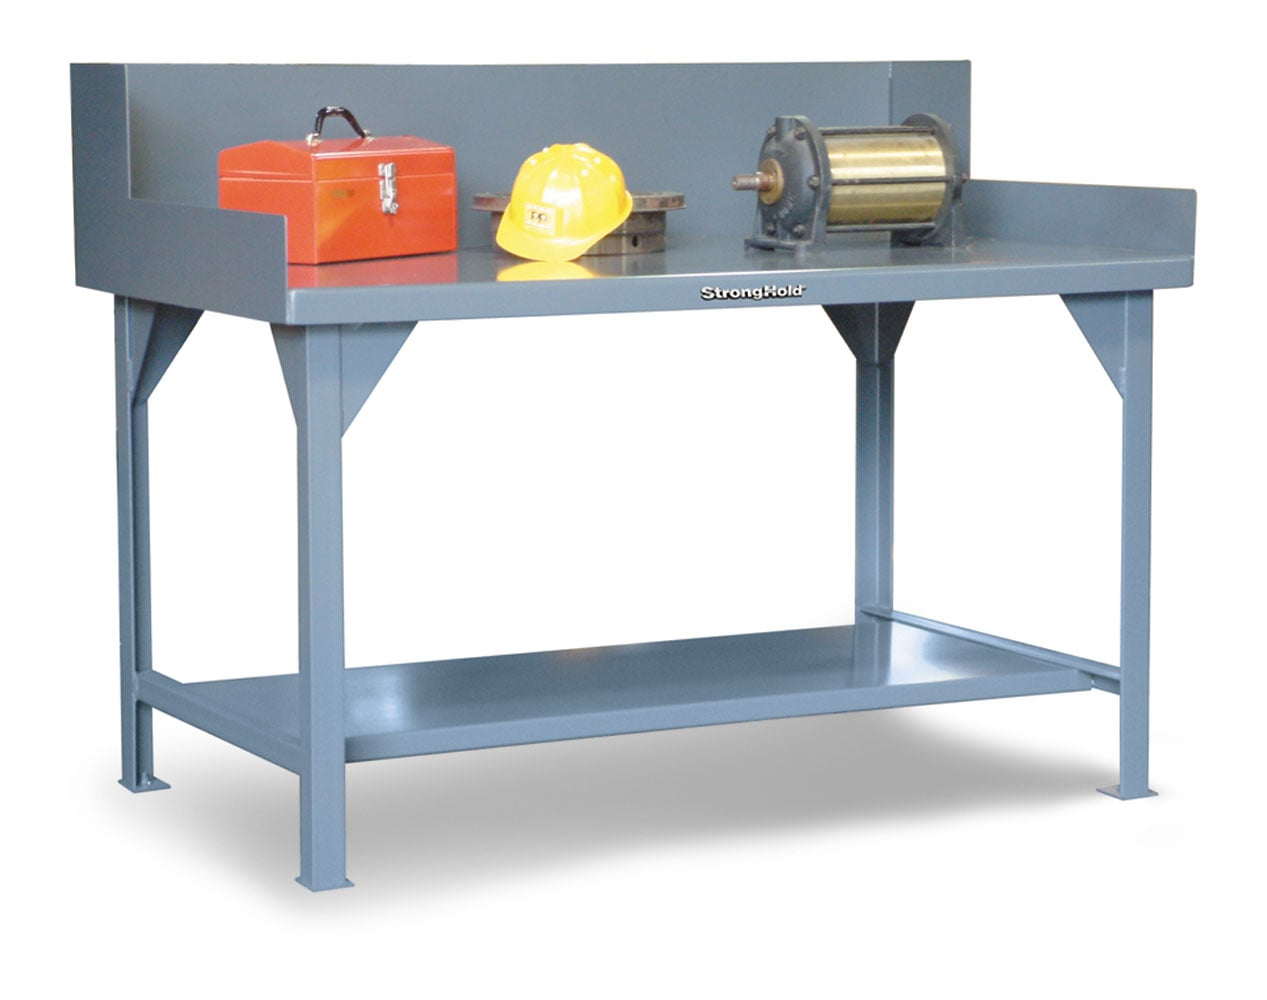 Extreme Duty 7 GA Shop Table with Side Guards, 2 Shelves – 2 In. W x 36 In. D x 46 In. H